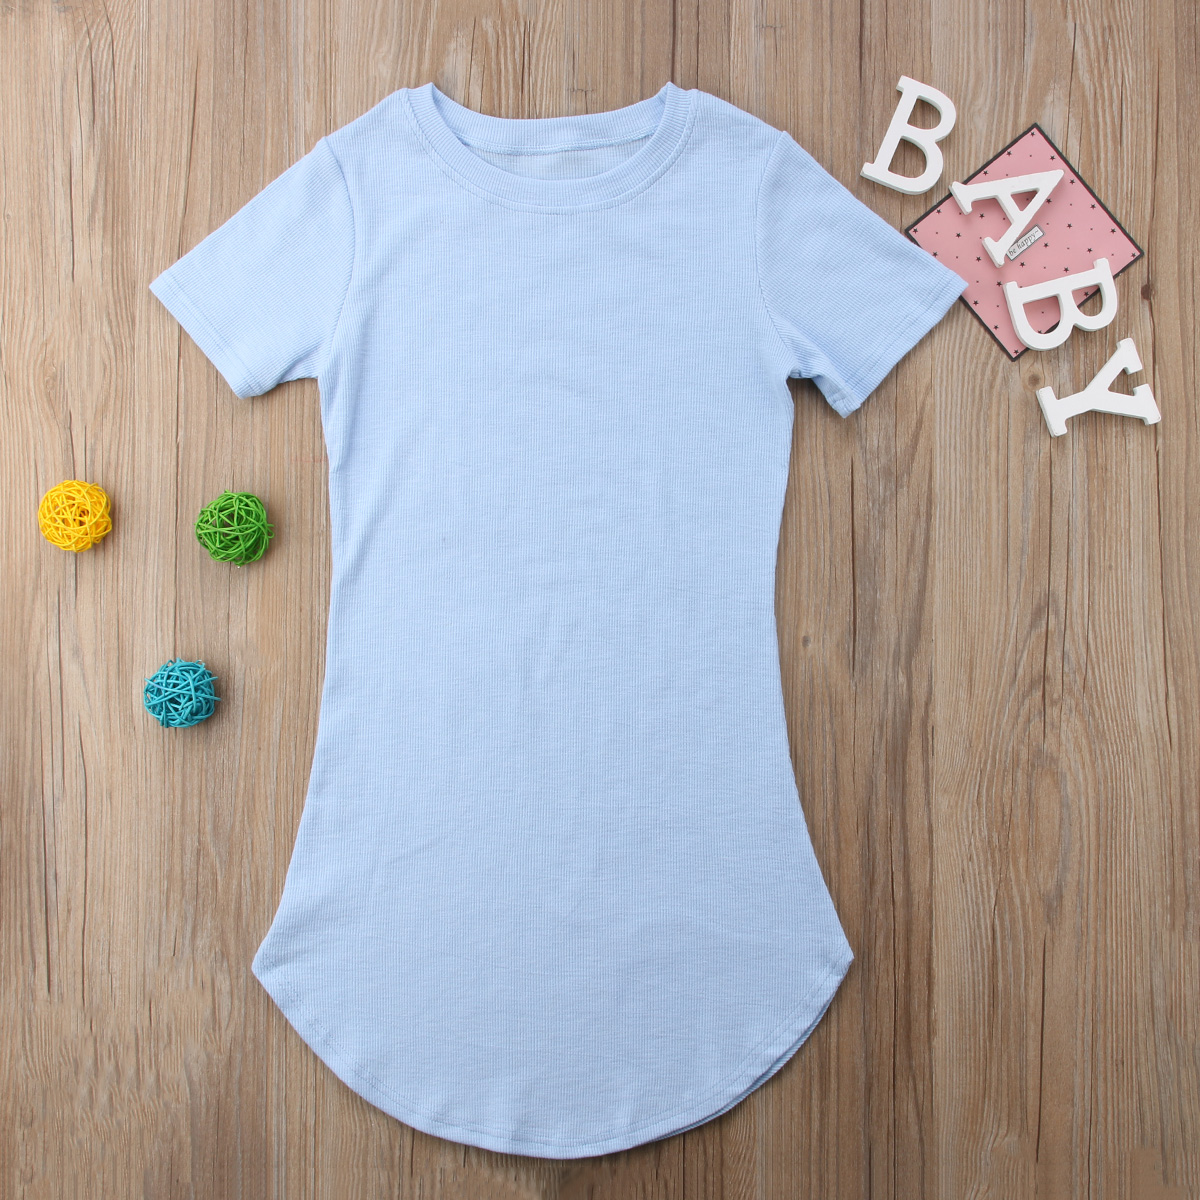 HTB1zz98p8smBKNjSZFFq6AT9VXaT 2019 Summer Mom Daughter Short Sleeve T shirt Dress Family Matching Outfits Baby Kid Women Party Dresses Cotton Clothes Dropship